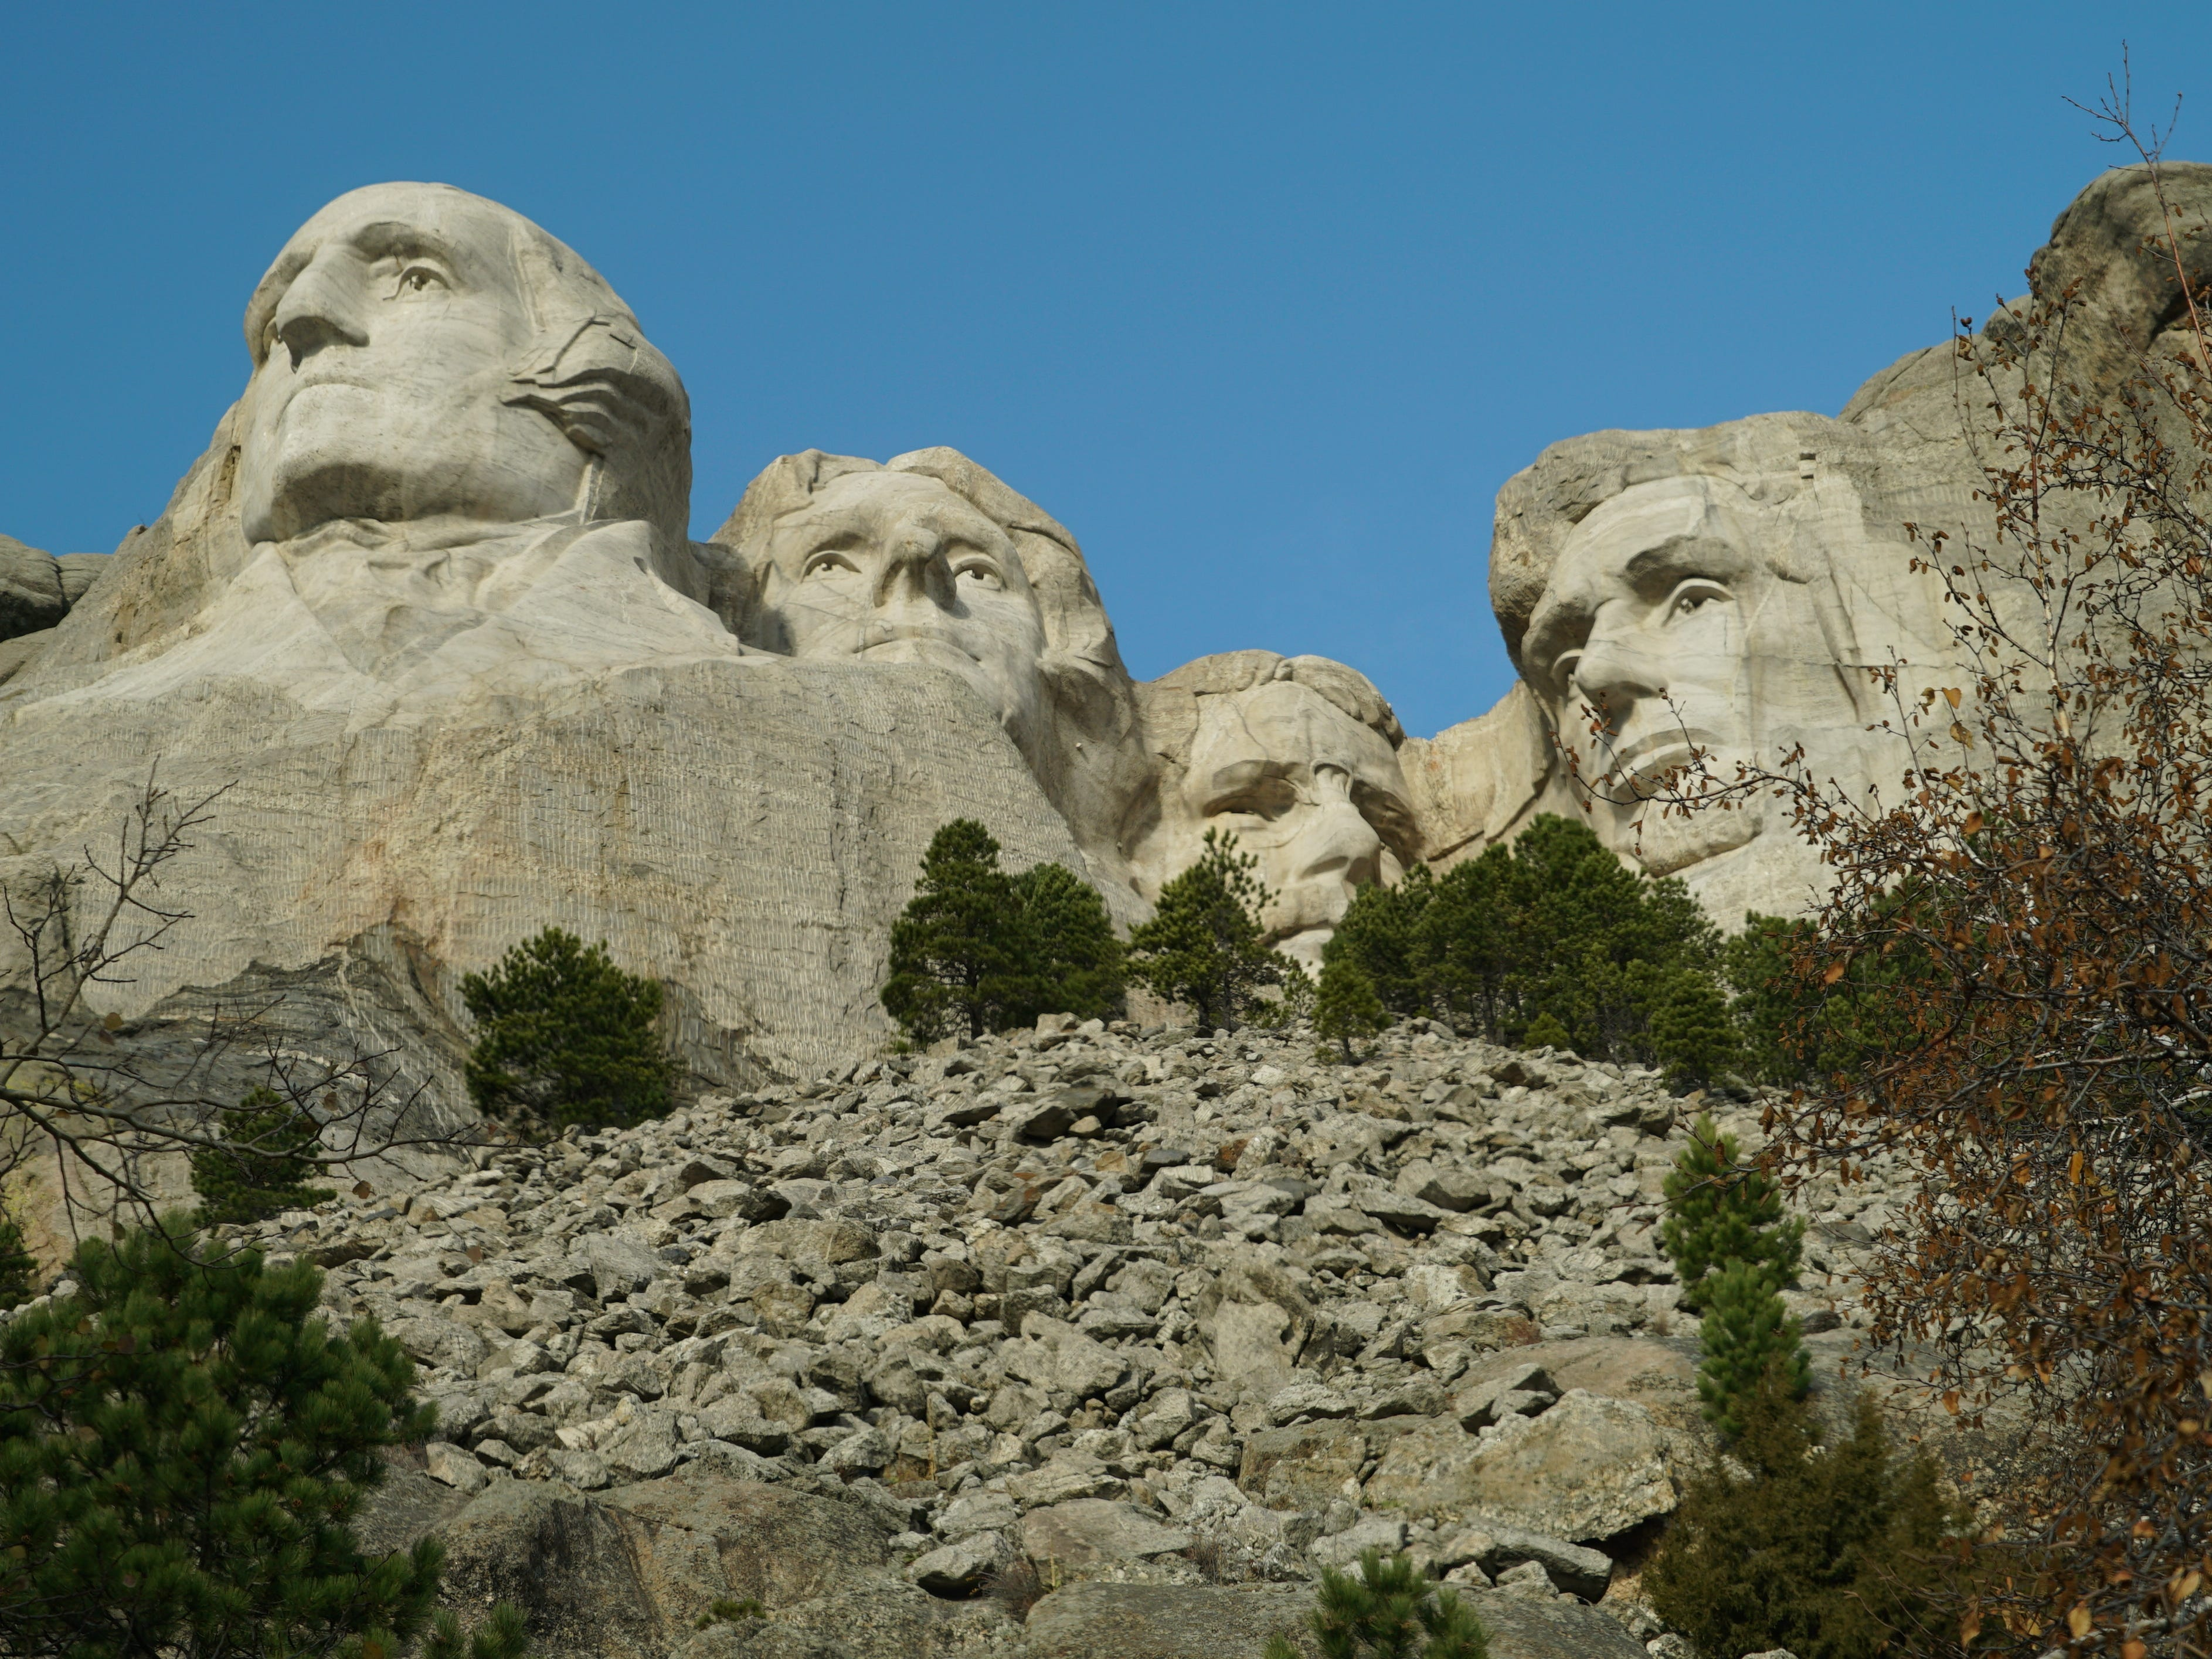 Each president on Mount Rushmore represents a different aspect of the first 150 years of U.S. history.